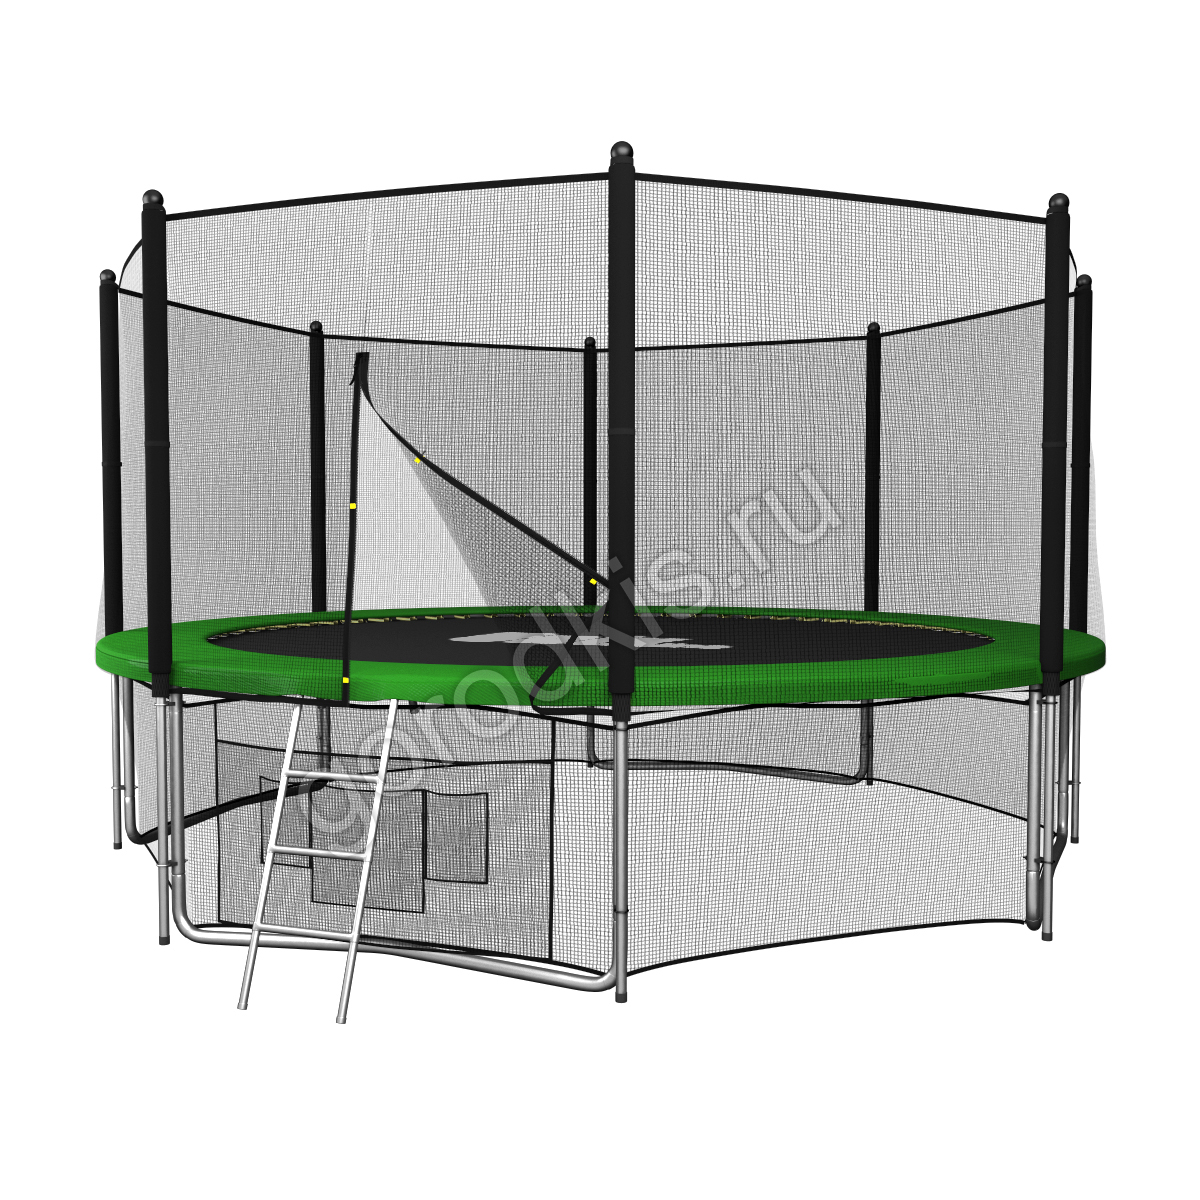 Батут с сеткой UNIX line 14ft outside (green)